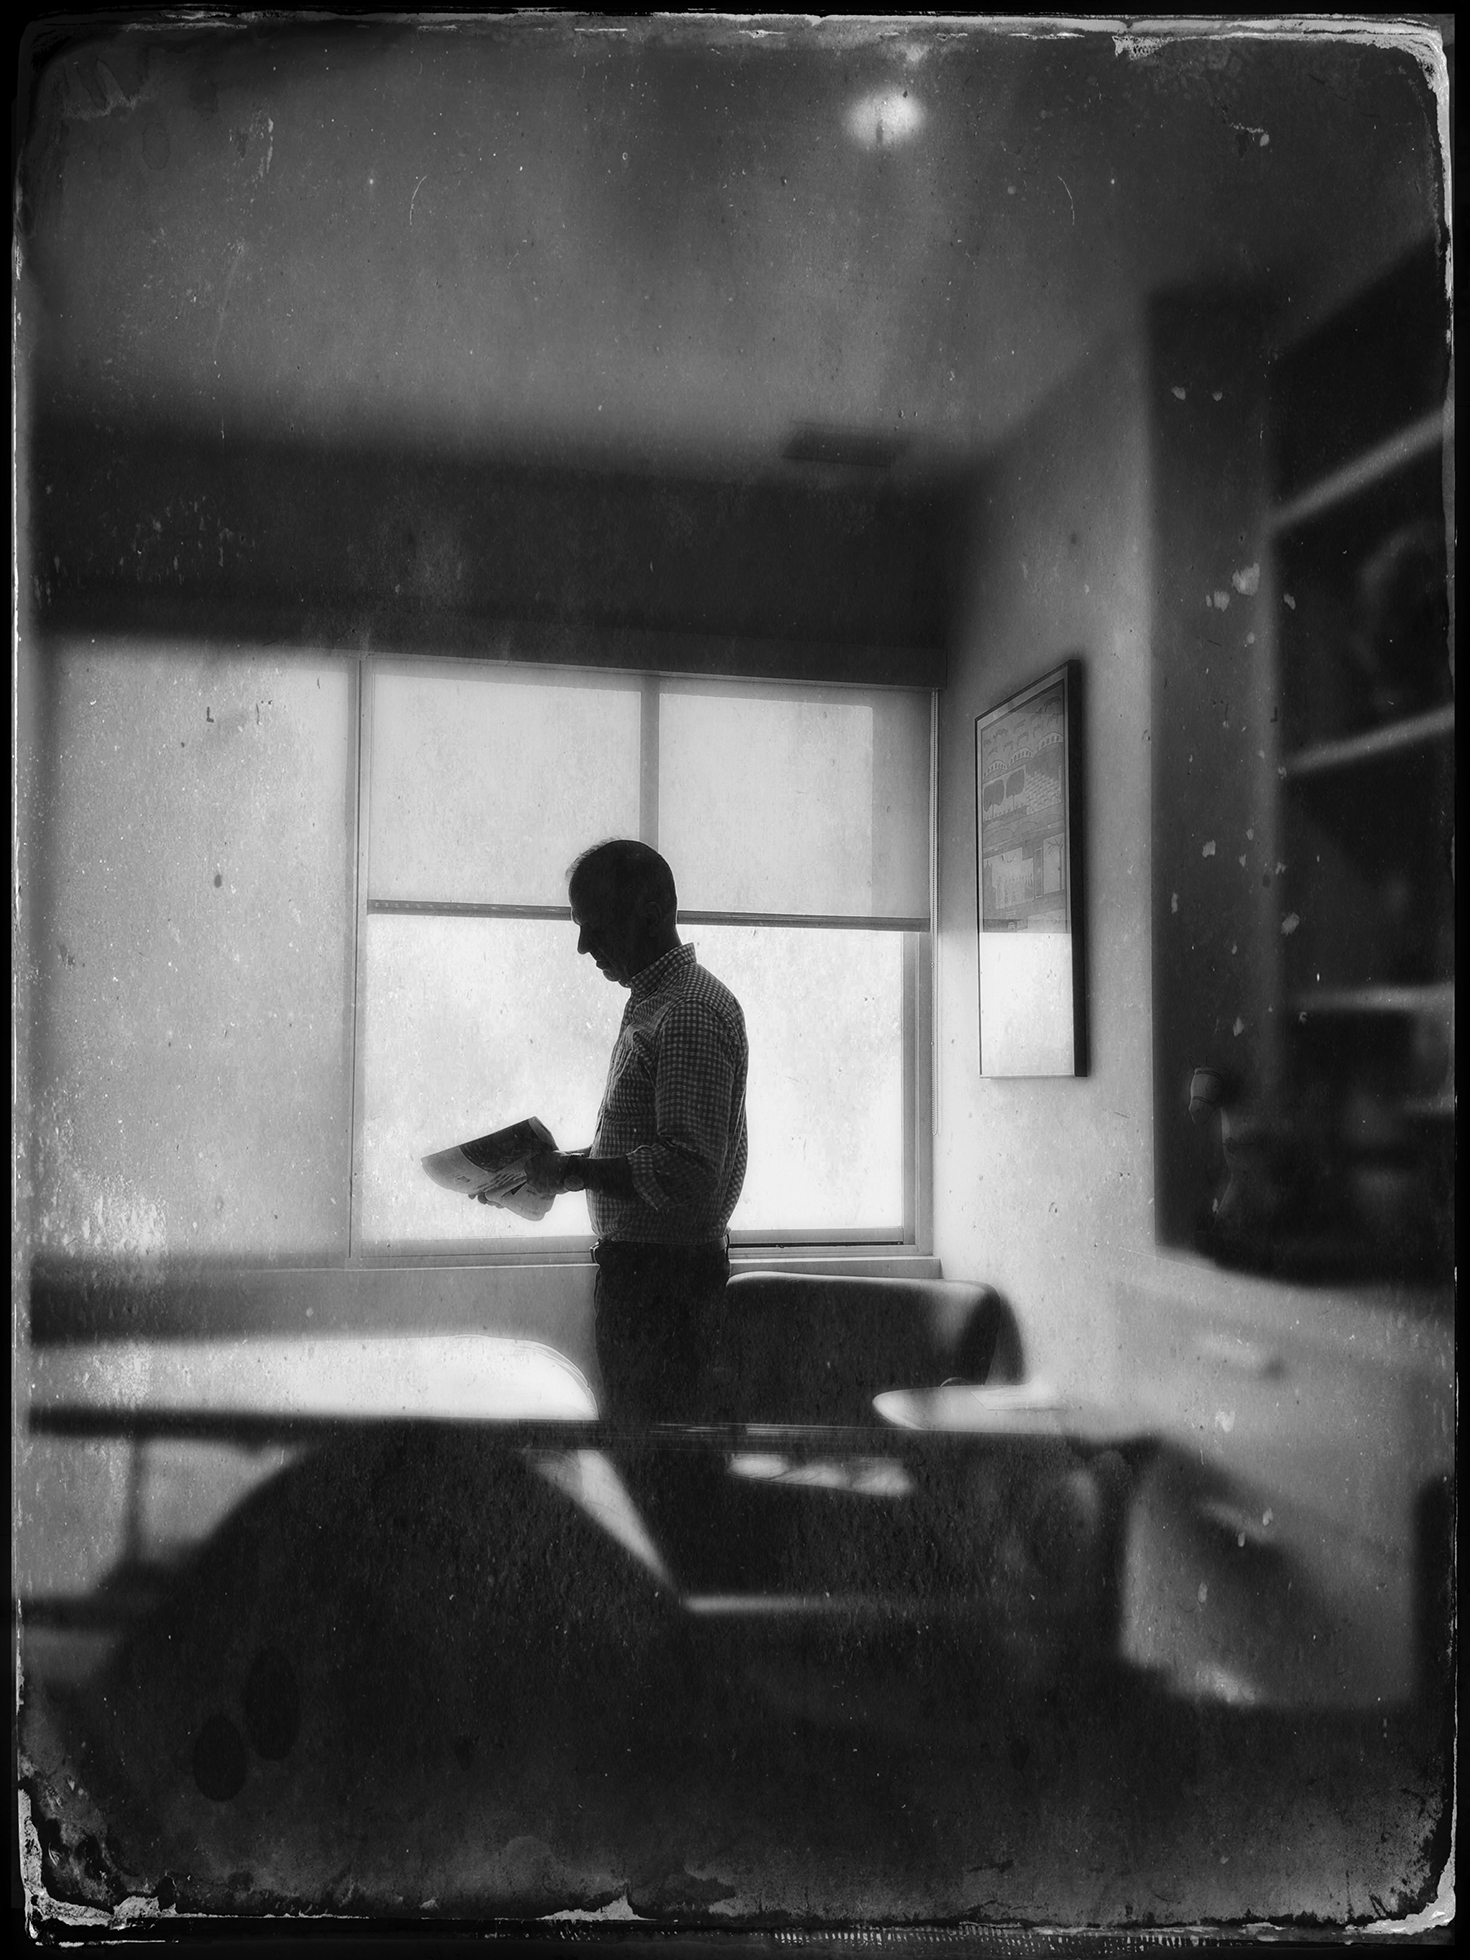 A male teacher stands silhouetted against the window of an empty classroom. He is looking down at papers in his hands.